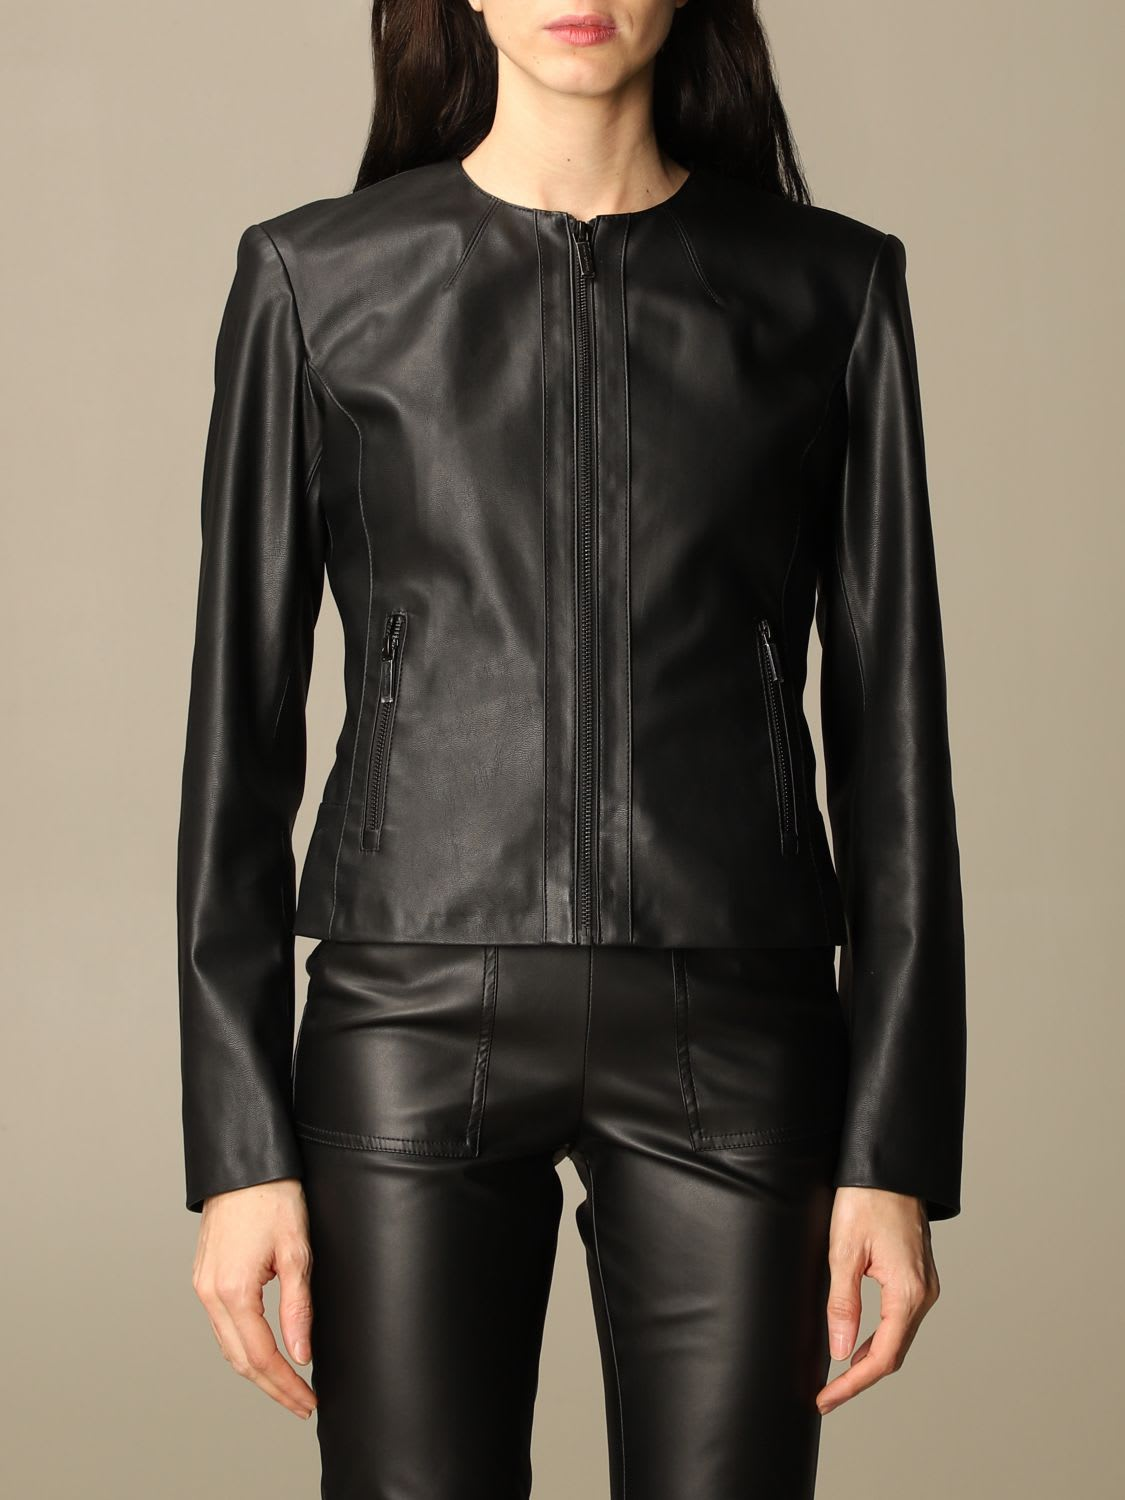 Armani Exchange Jacket Armani Exchange Jacket In Synthetic Leather